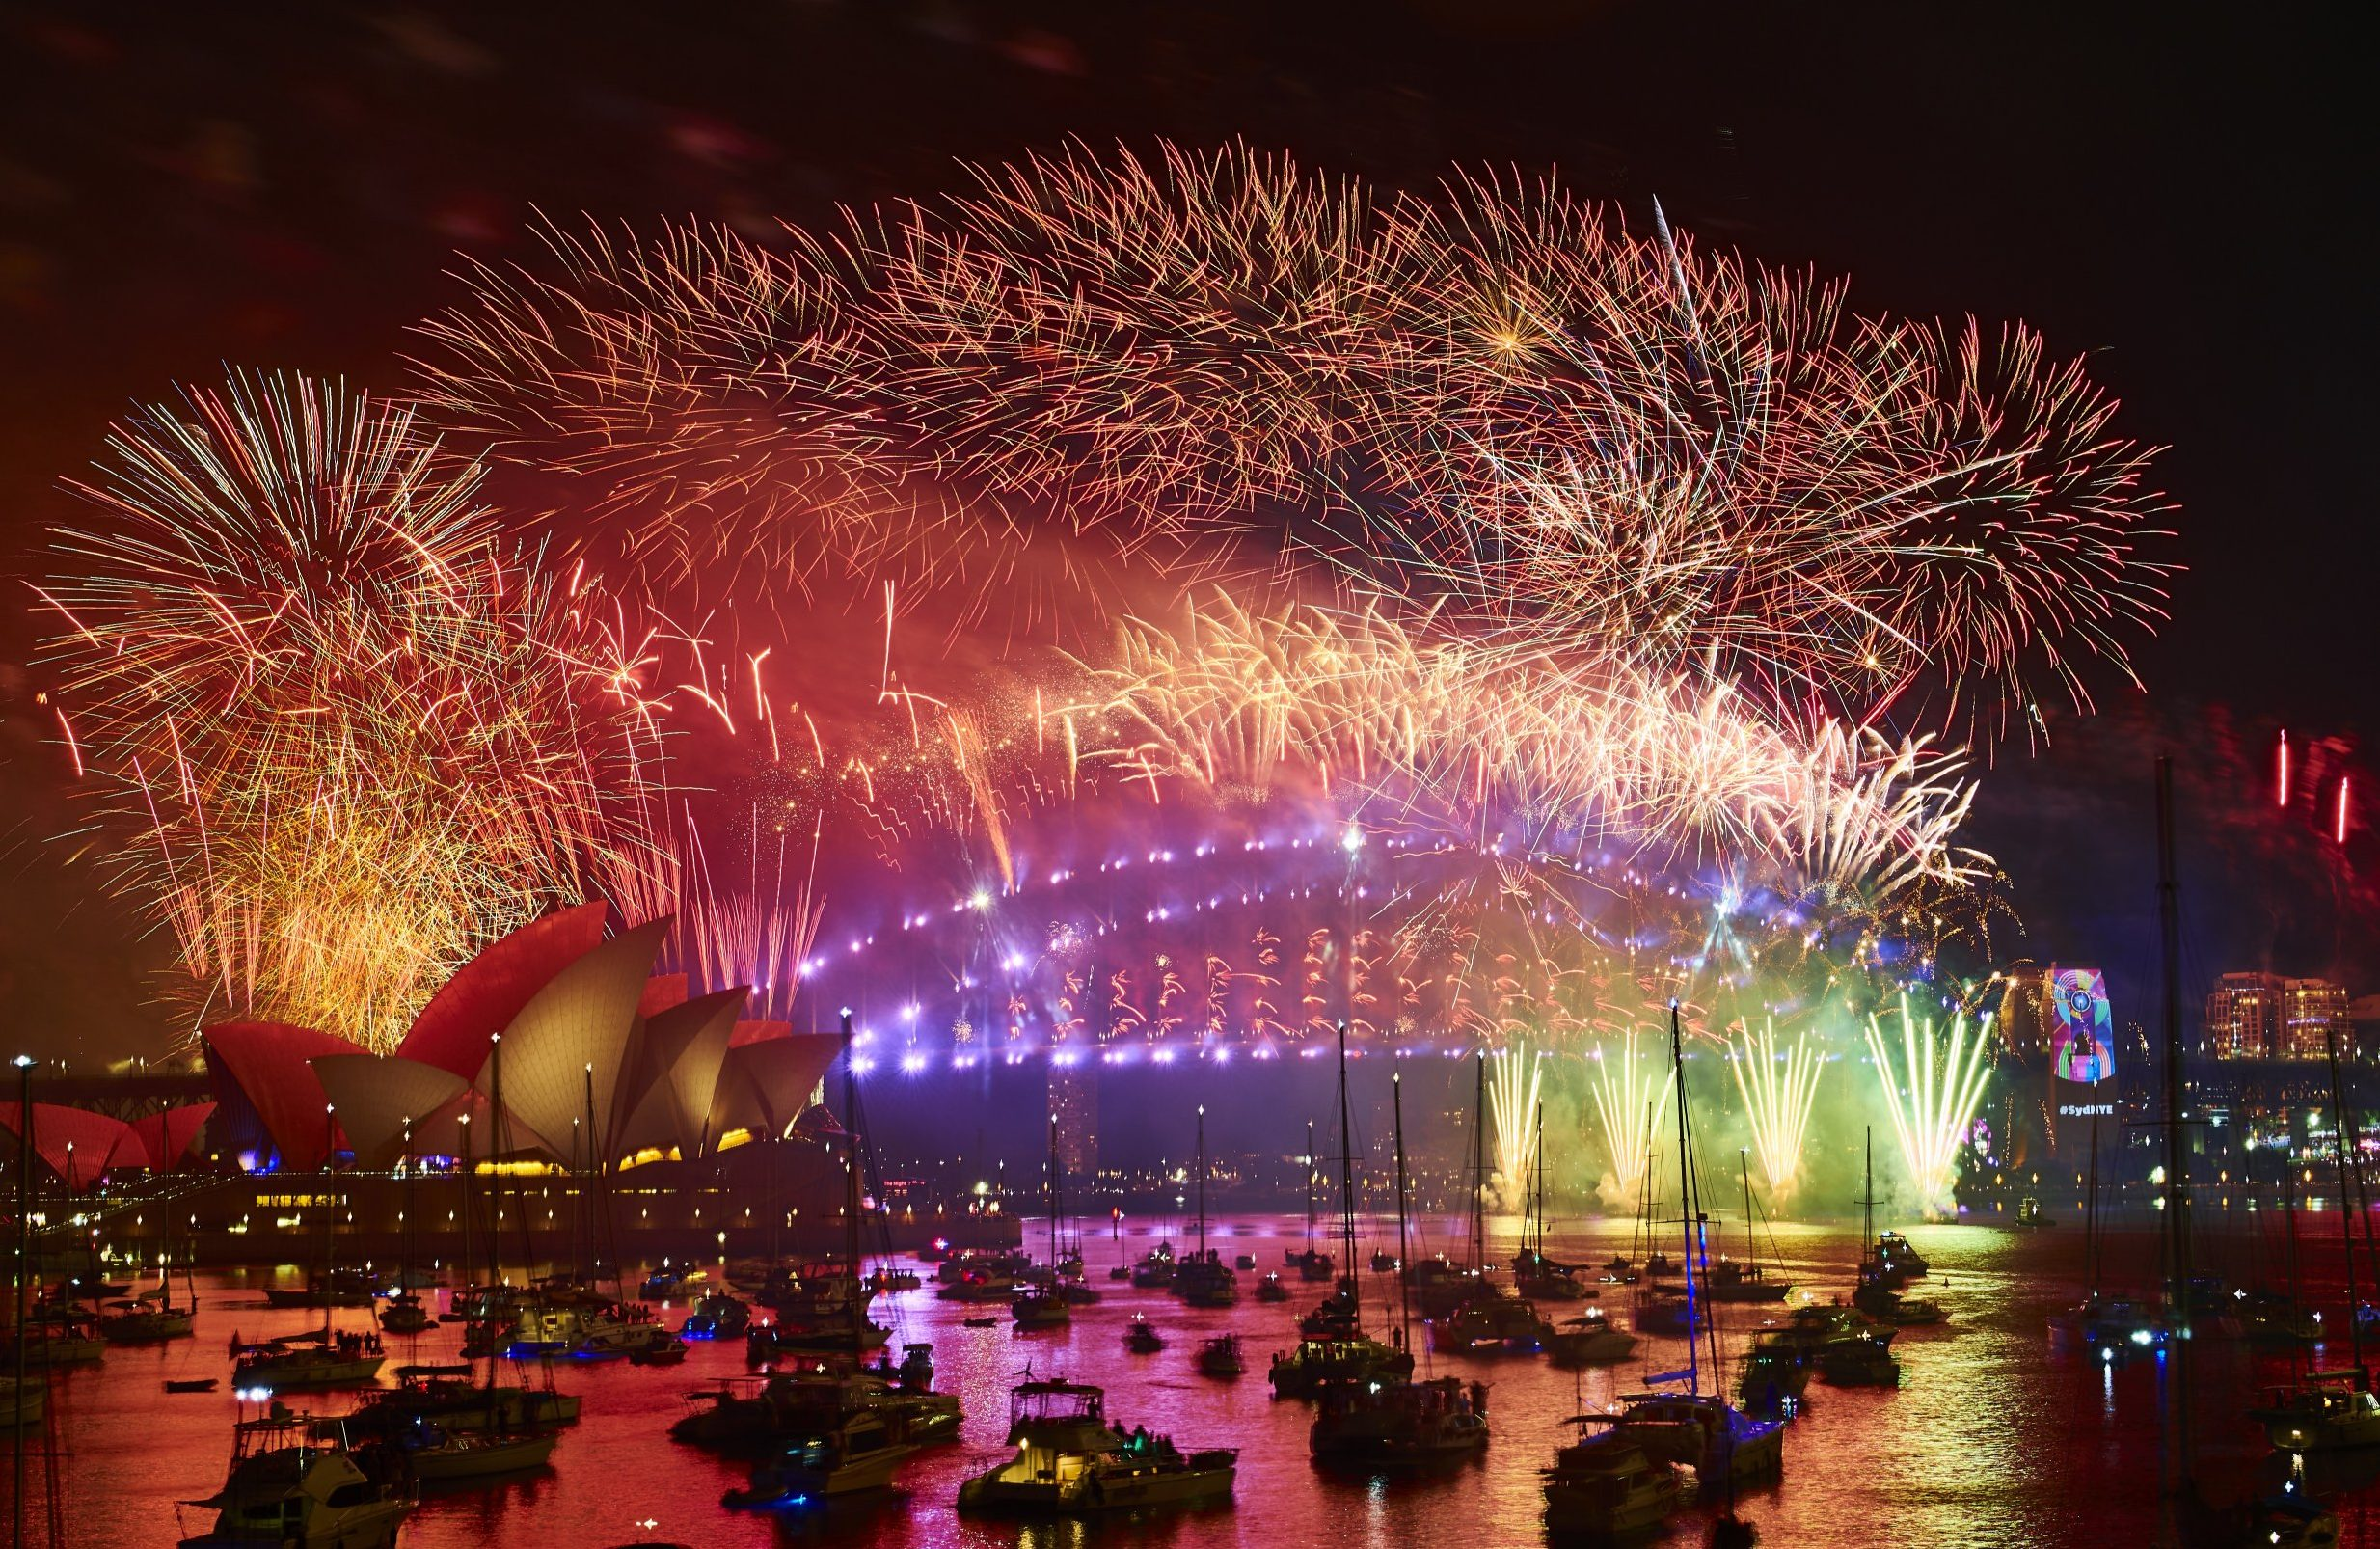 SYDNEY, AUSTRALIA - JANUARY 01: Fireworks explode over the Sydney Harbour Bridge and Sydney Opera House during the midnight display on New Year's Eve on Sydney Harbour on January 1, 2019 in Sydney, Australia. (Photo by Brett Hemmings\City of Sydney/Getty Images)